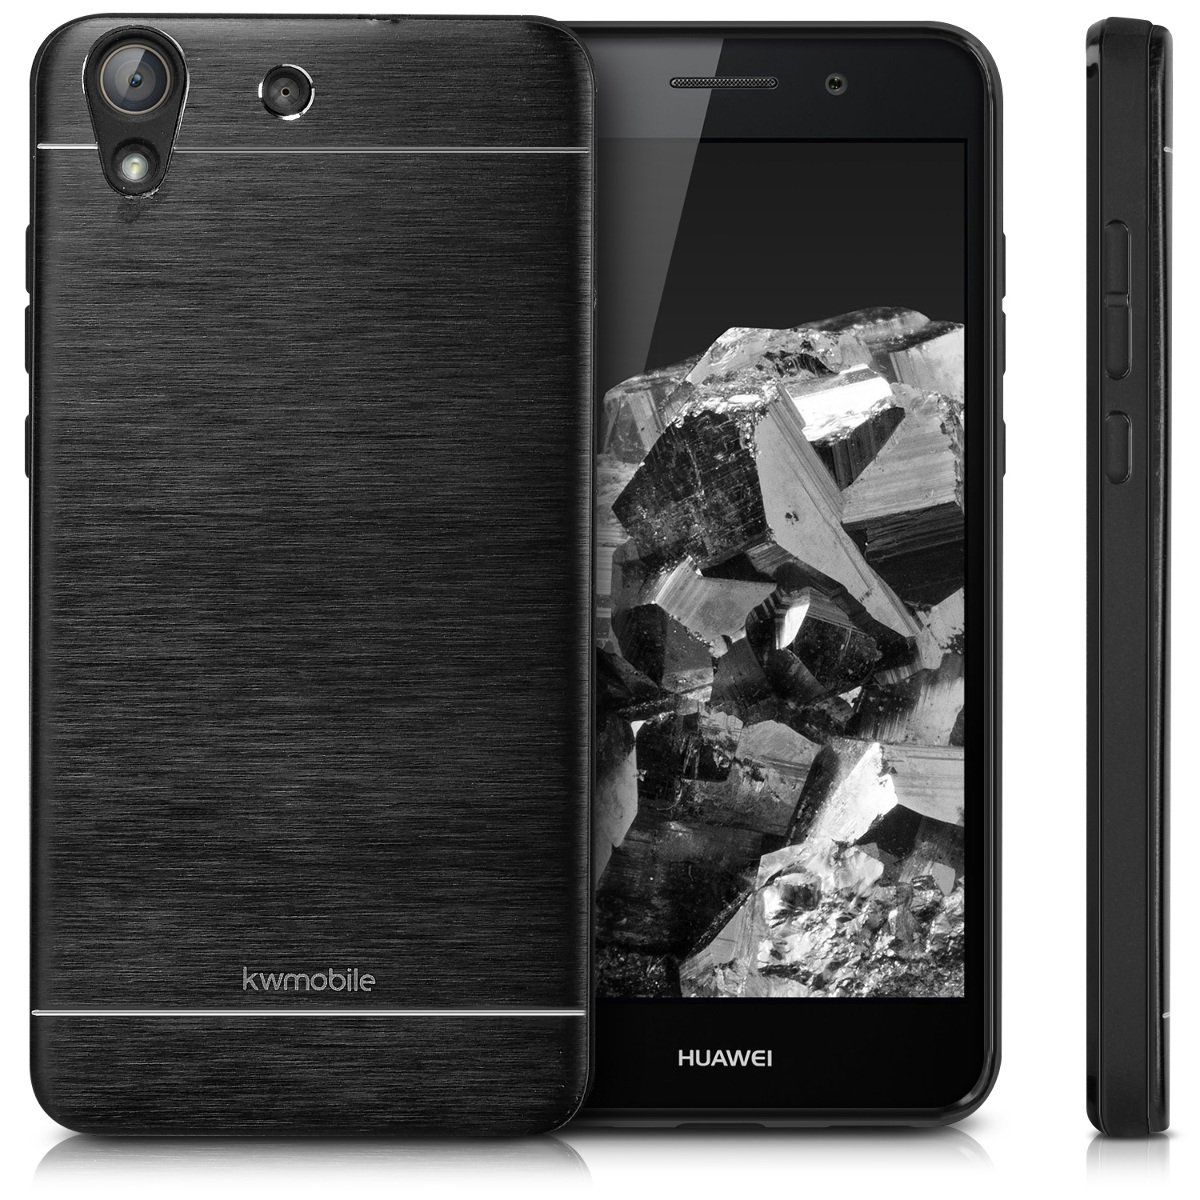 kwmobile Case for Huawei Y6 II - Durable Shockproof Aluminum Protective Smartphone Back Cover - Black